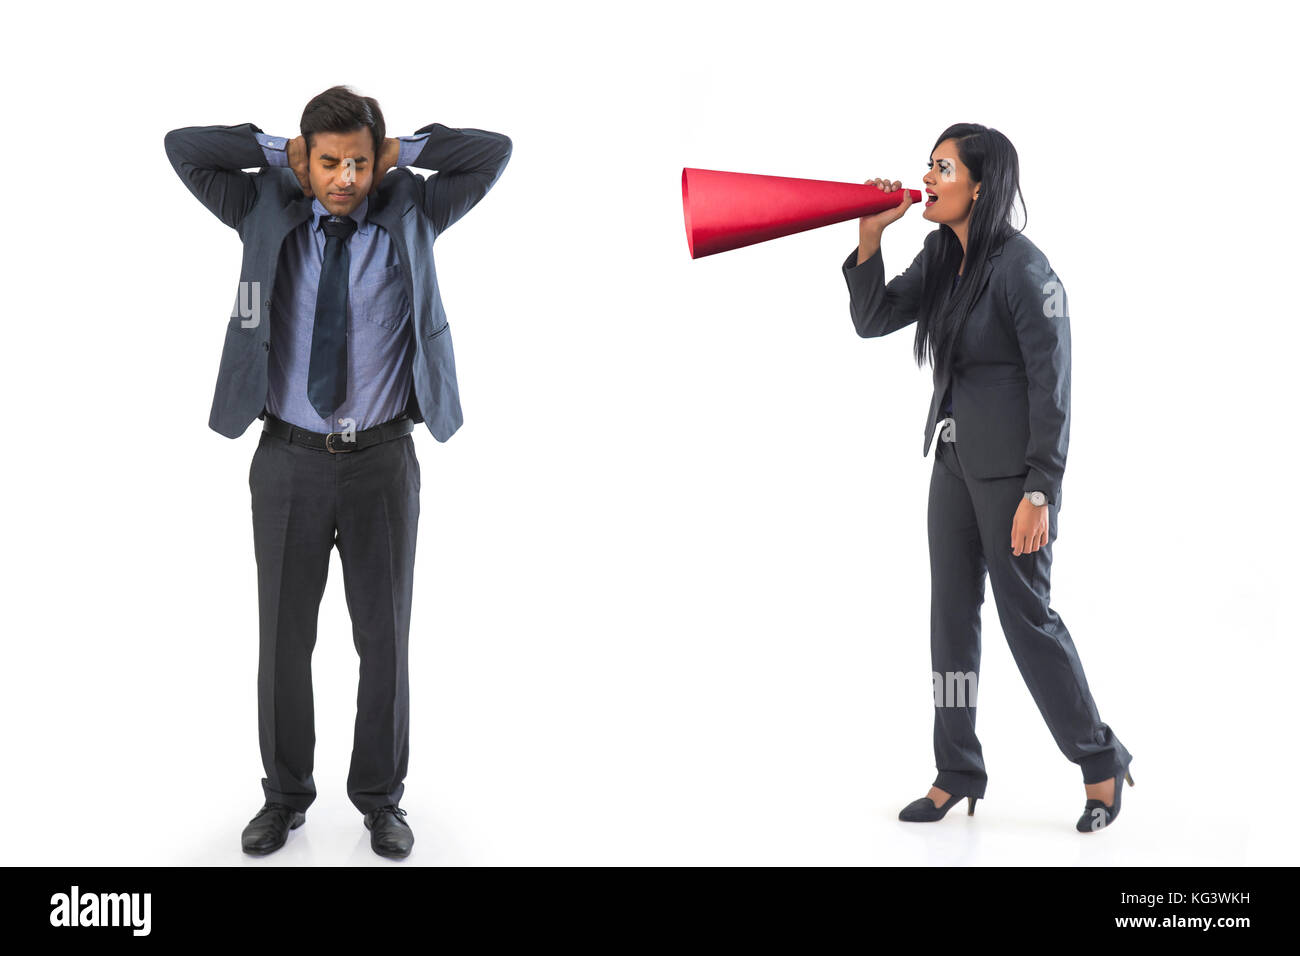 Businesswoman shouting through megaphone on businessman - Stock Image